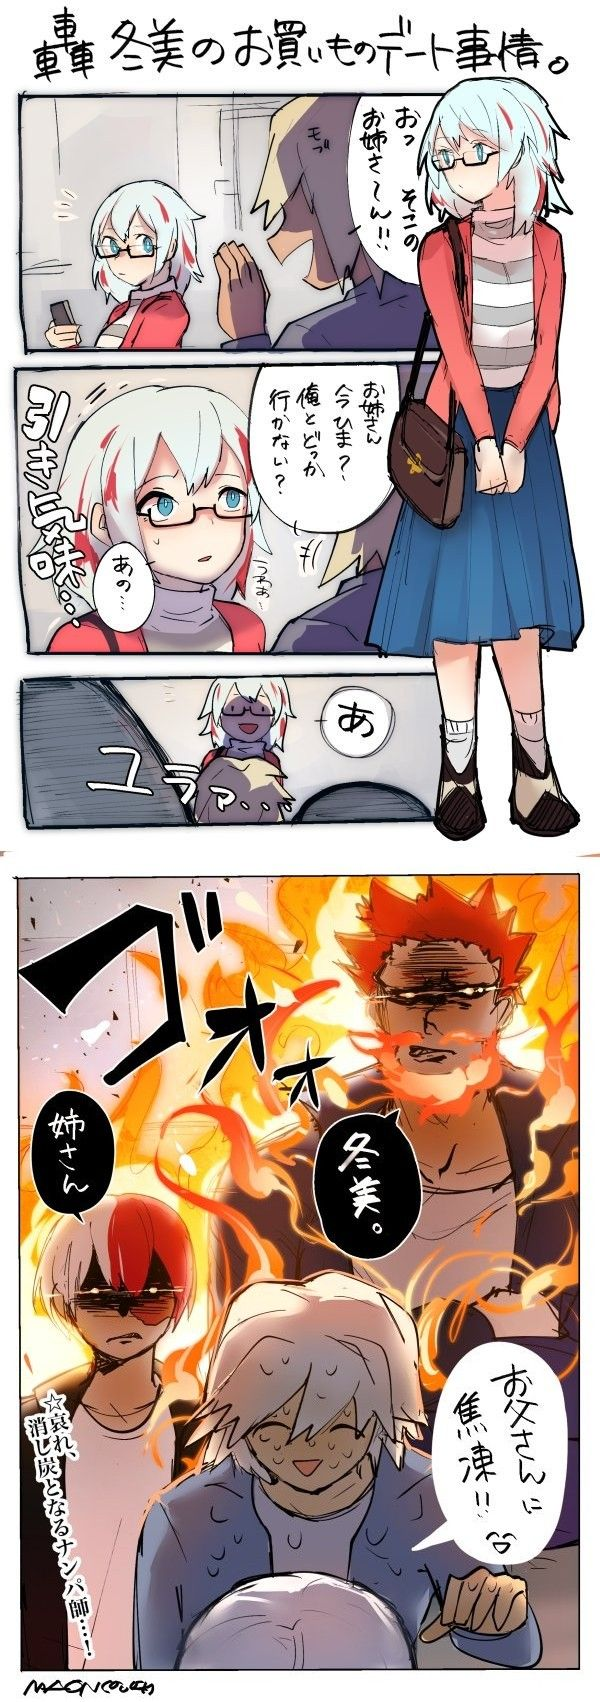 Overprotective father and son  Endeavor and Todoroki doesn't